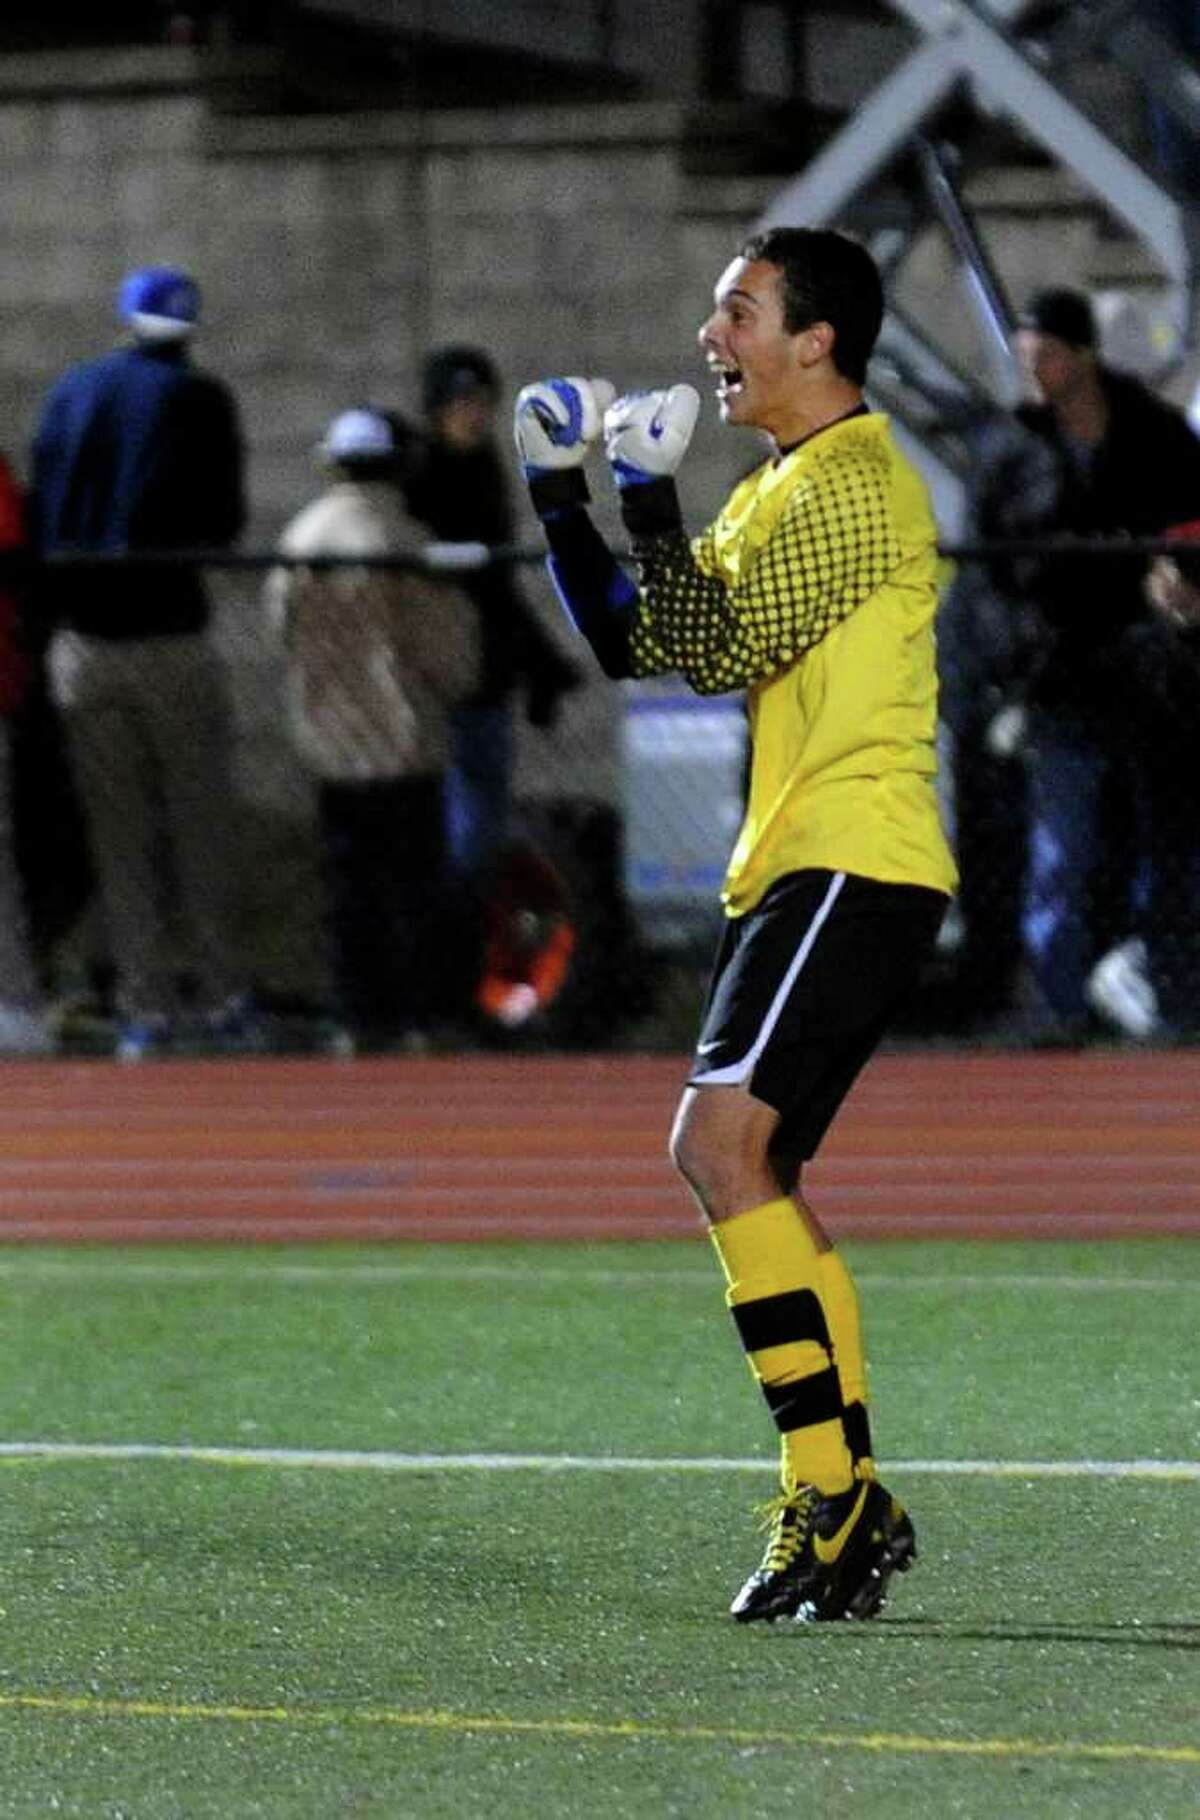 In the final seconds, Trumbull goalie Nick Weinstein gets ready to celebrate the team's win, during FCIAC Boys' Soccer Championship action in Fairfield, Conn. on Friday November 4, 2011.